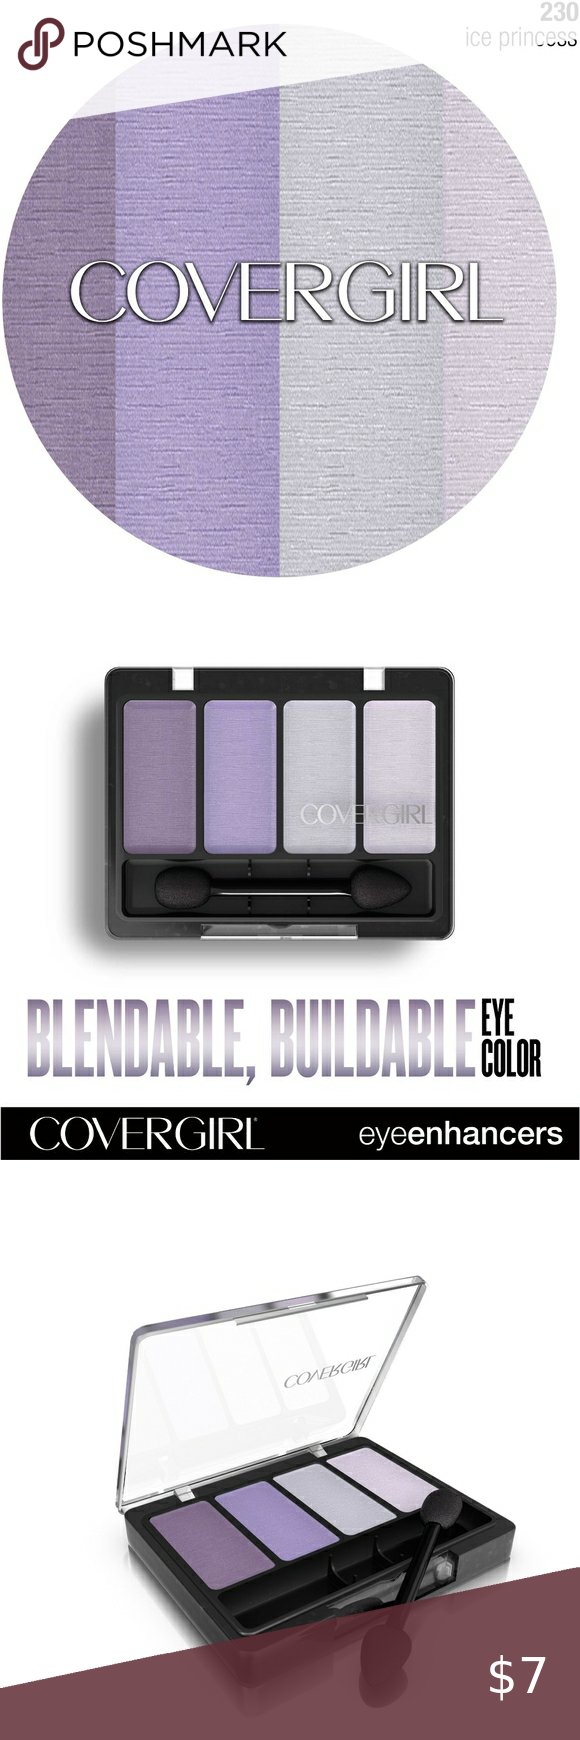 Ice Princess 230 By Covergirl In 2020 Covergirl Ice Princess Cover Girl Makeup